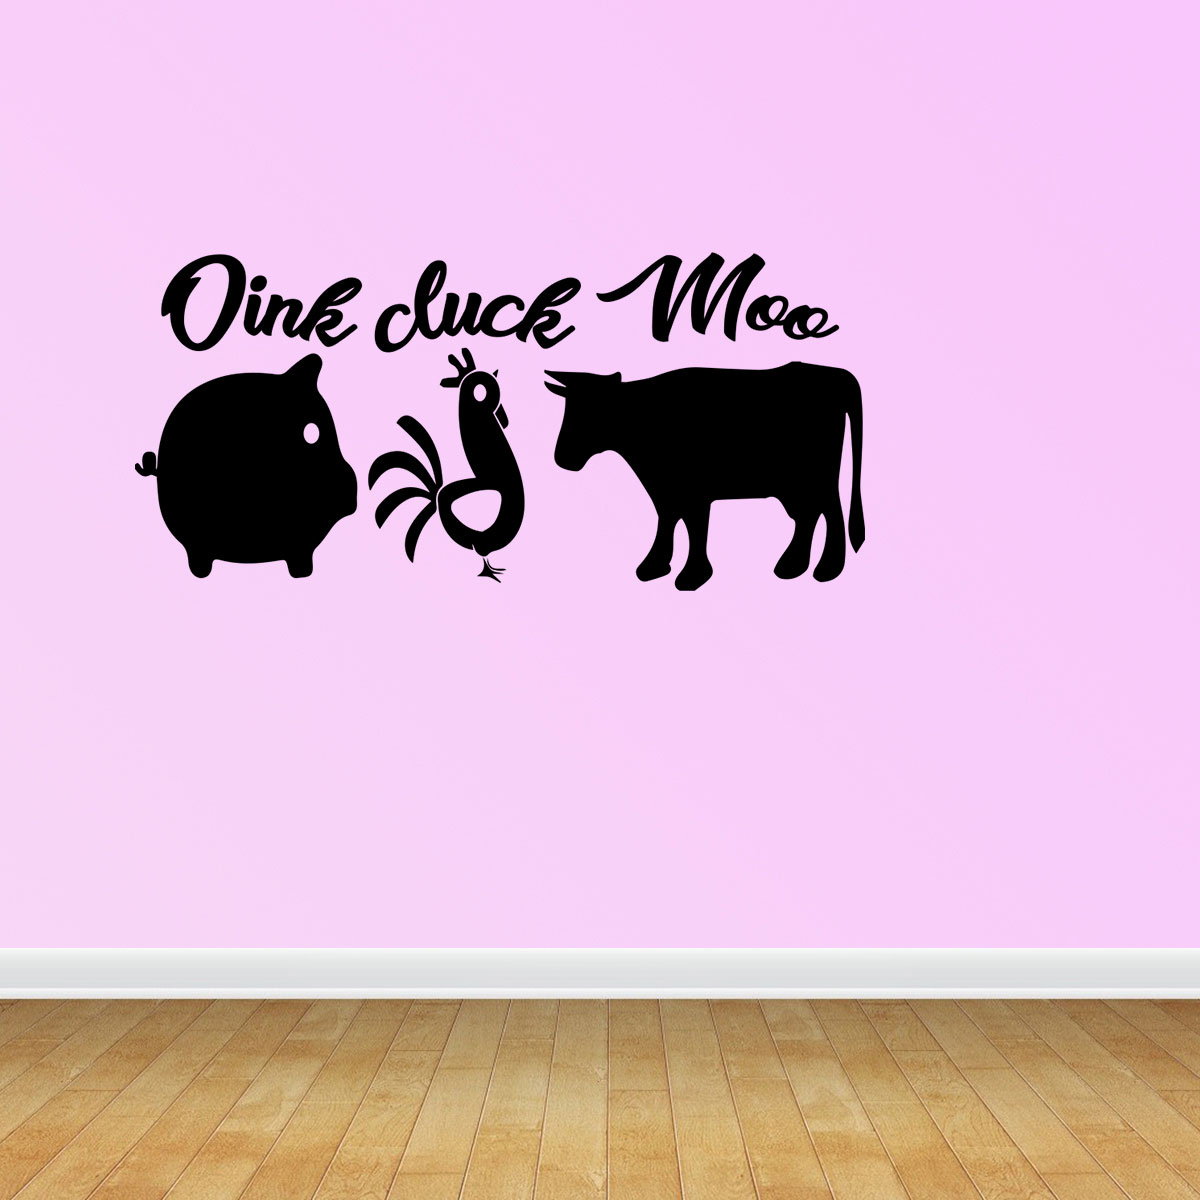 Oink Cluck Moo Kitchen Decor Sign Pig Rooster Cow Sign Home Decor Quote Pc345 Walmart Com Walmart Com